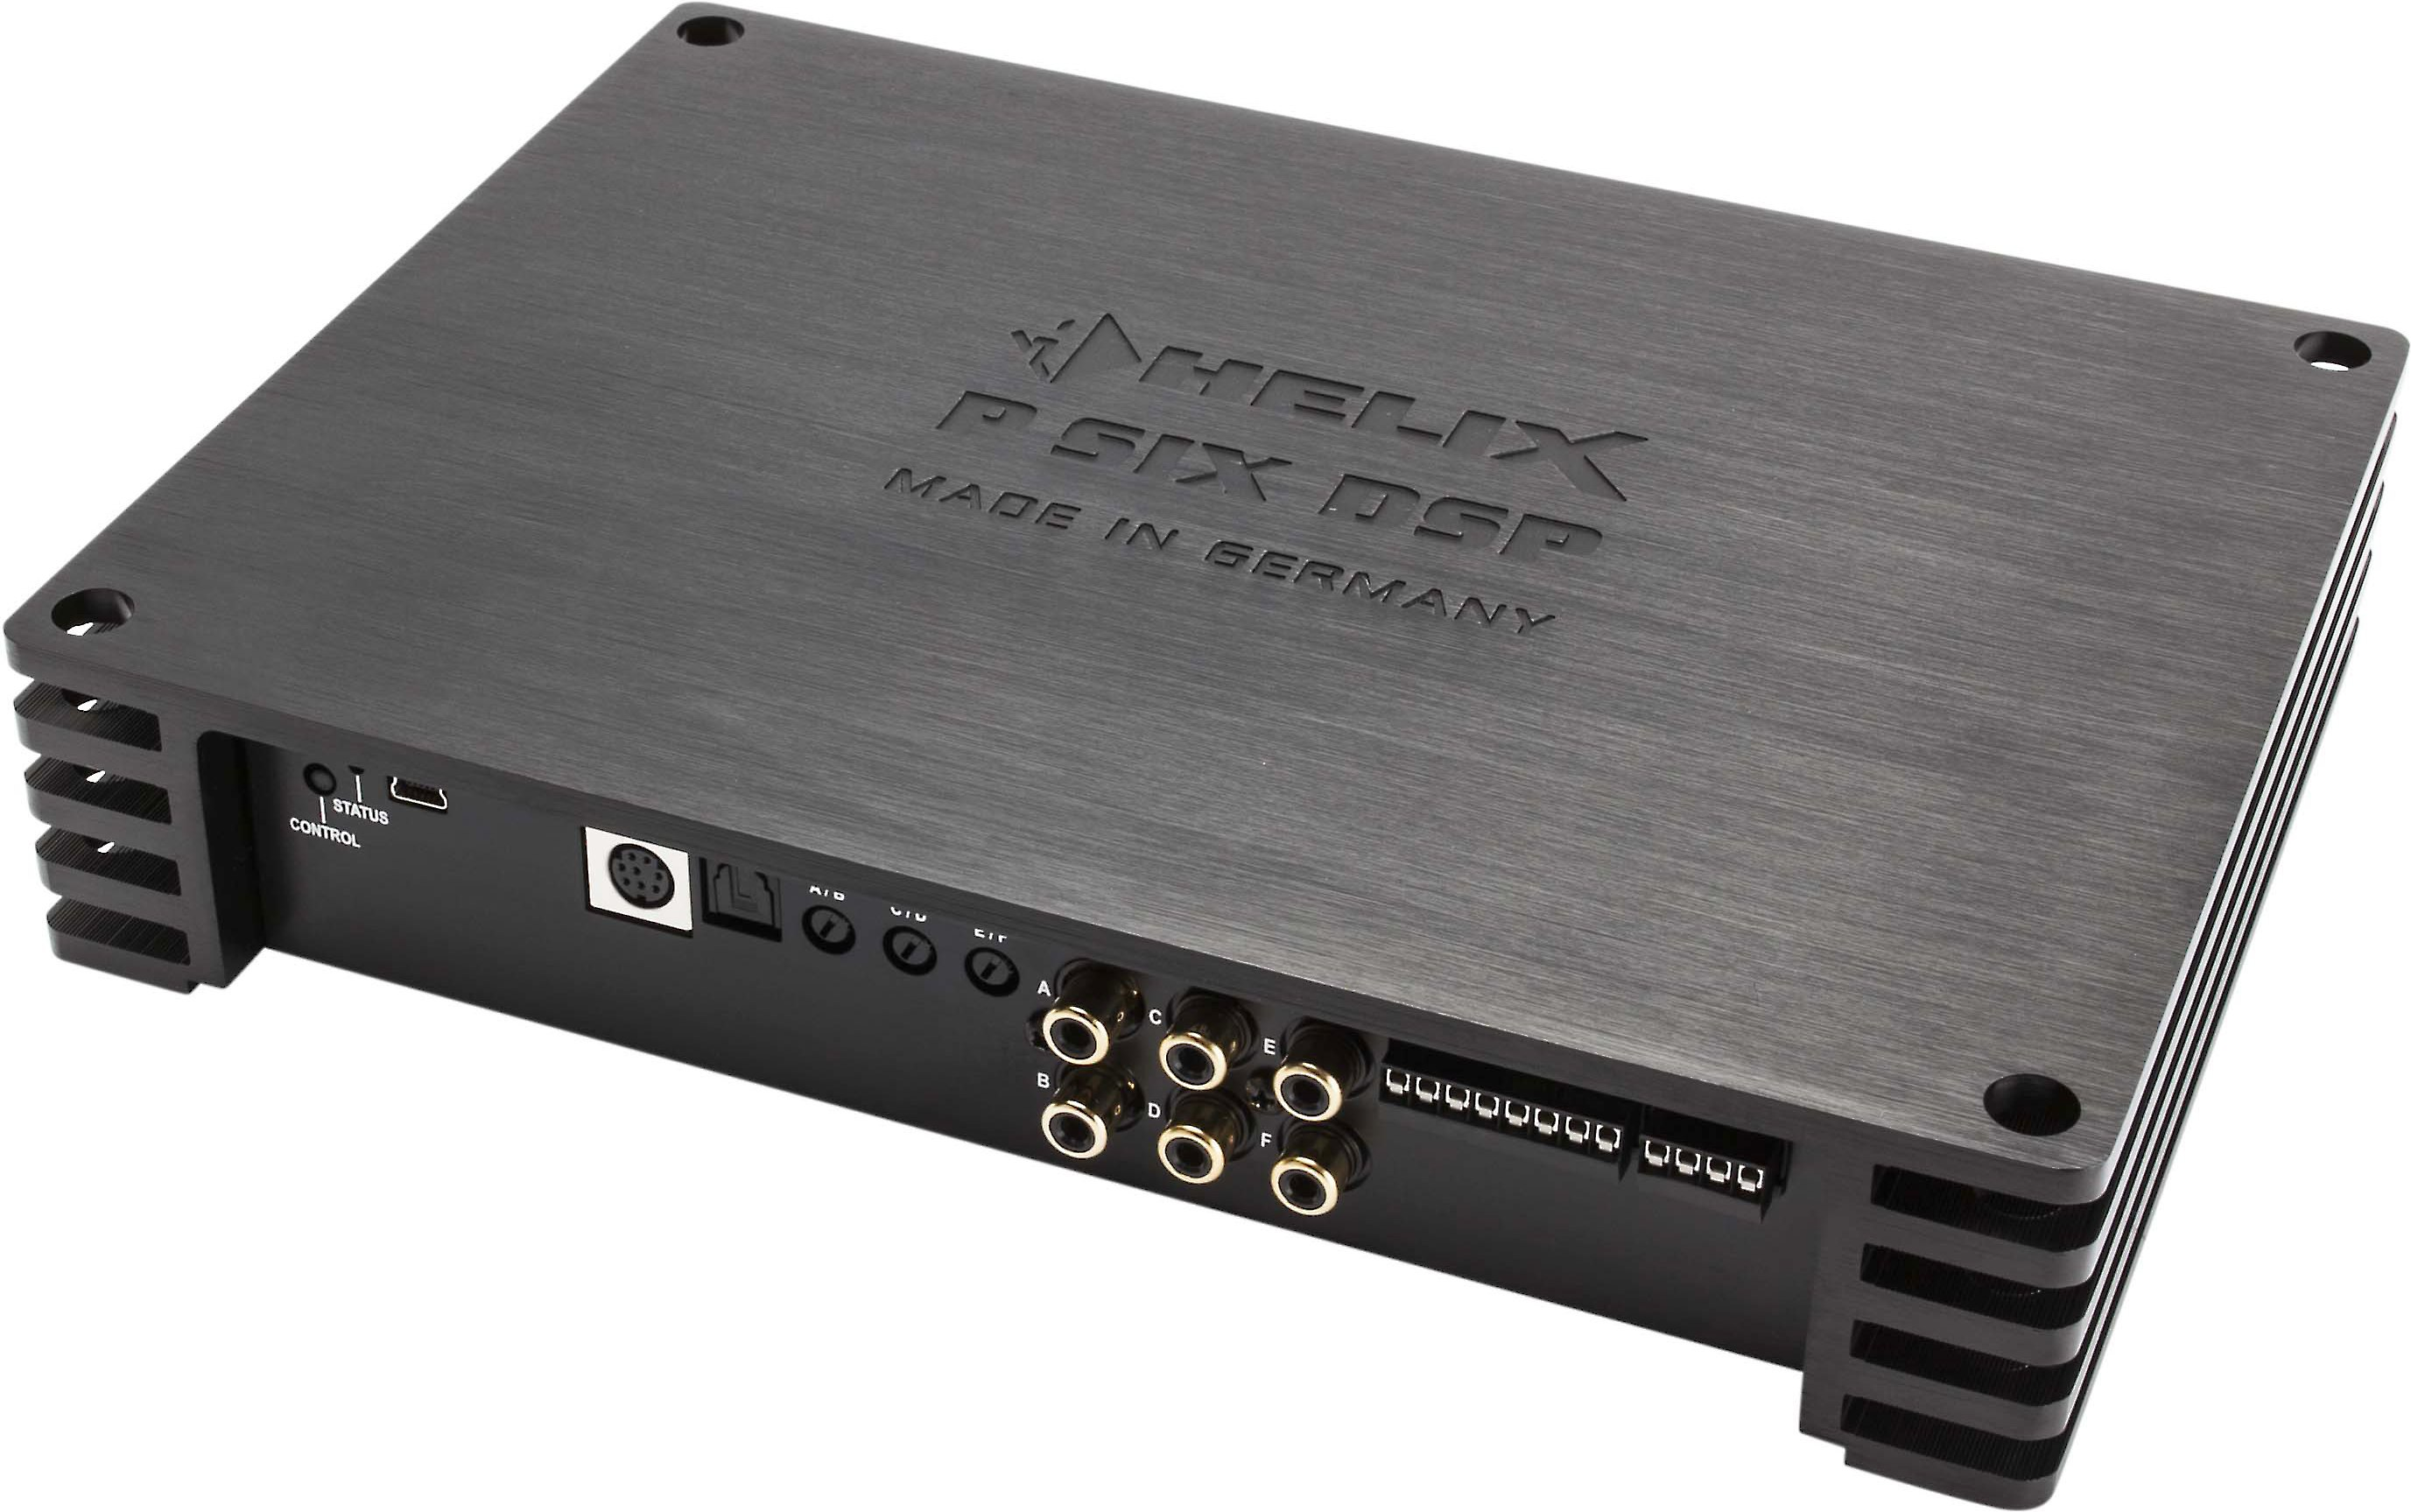 70b6fc54 HELIX P SIX DSP MK2 6-channel car amplifier with digital signal processing  — 120 watts RMS x 6 at Crutchfield.com